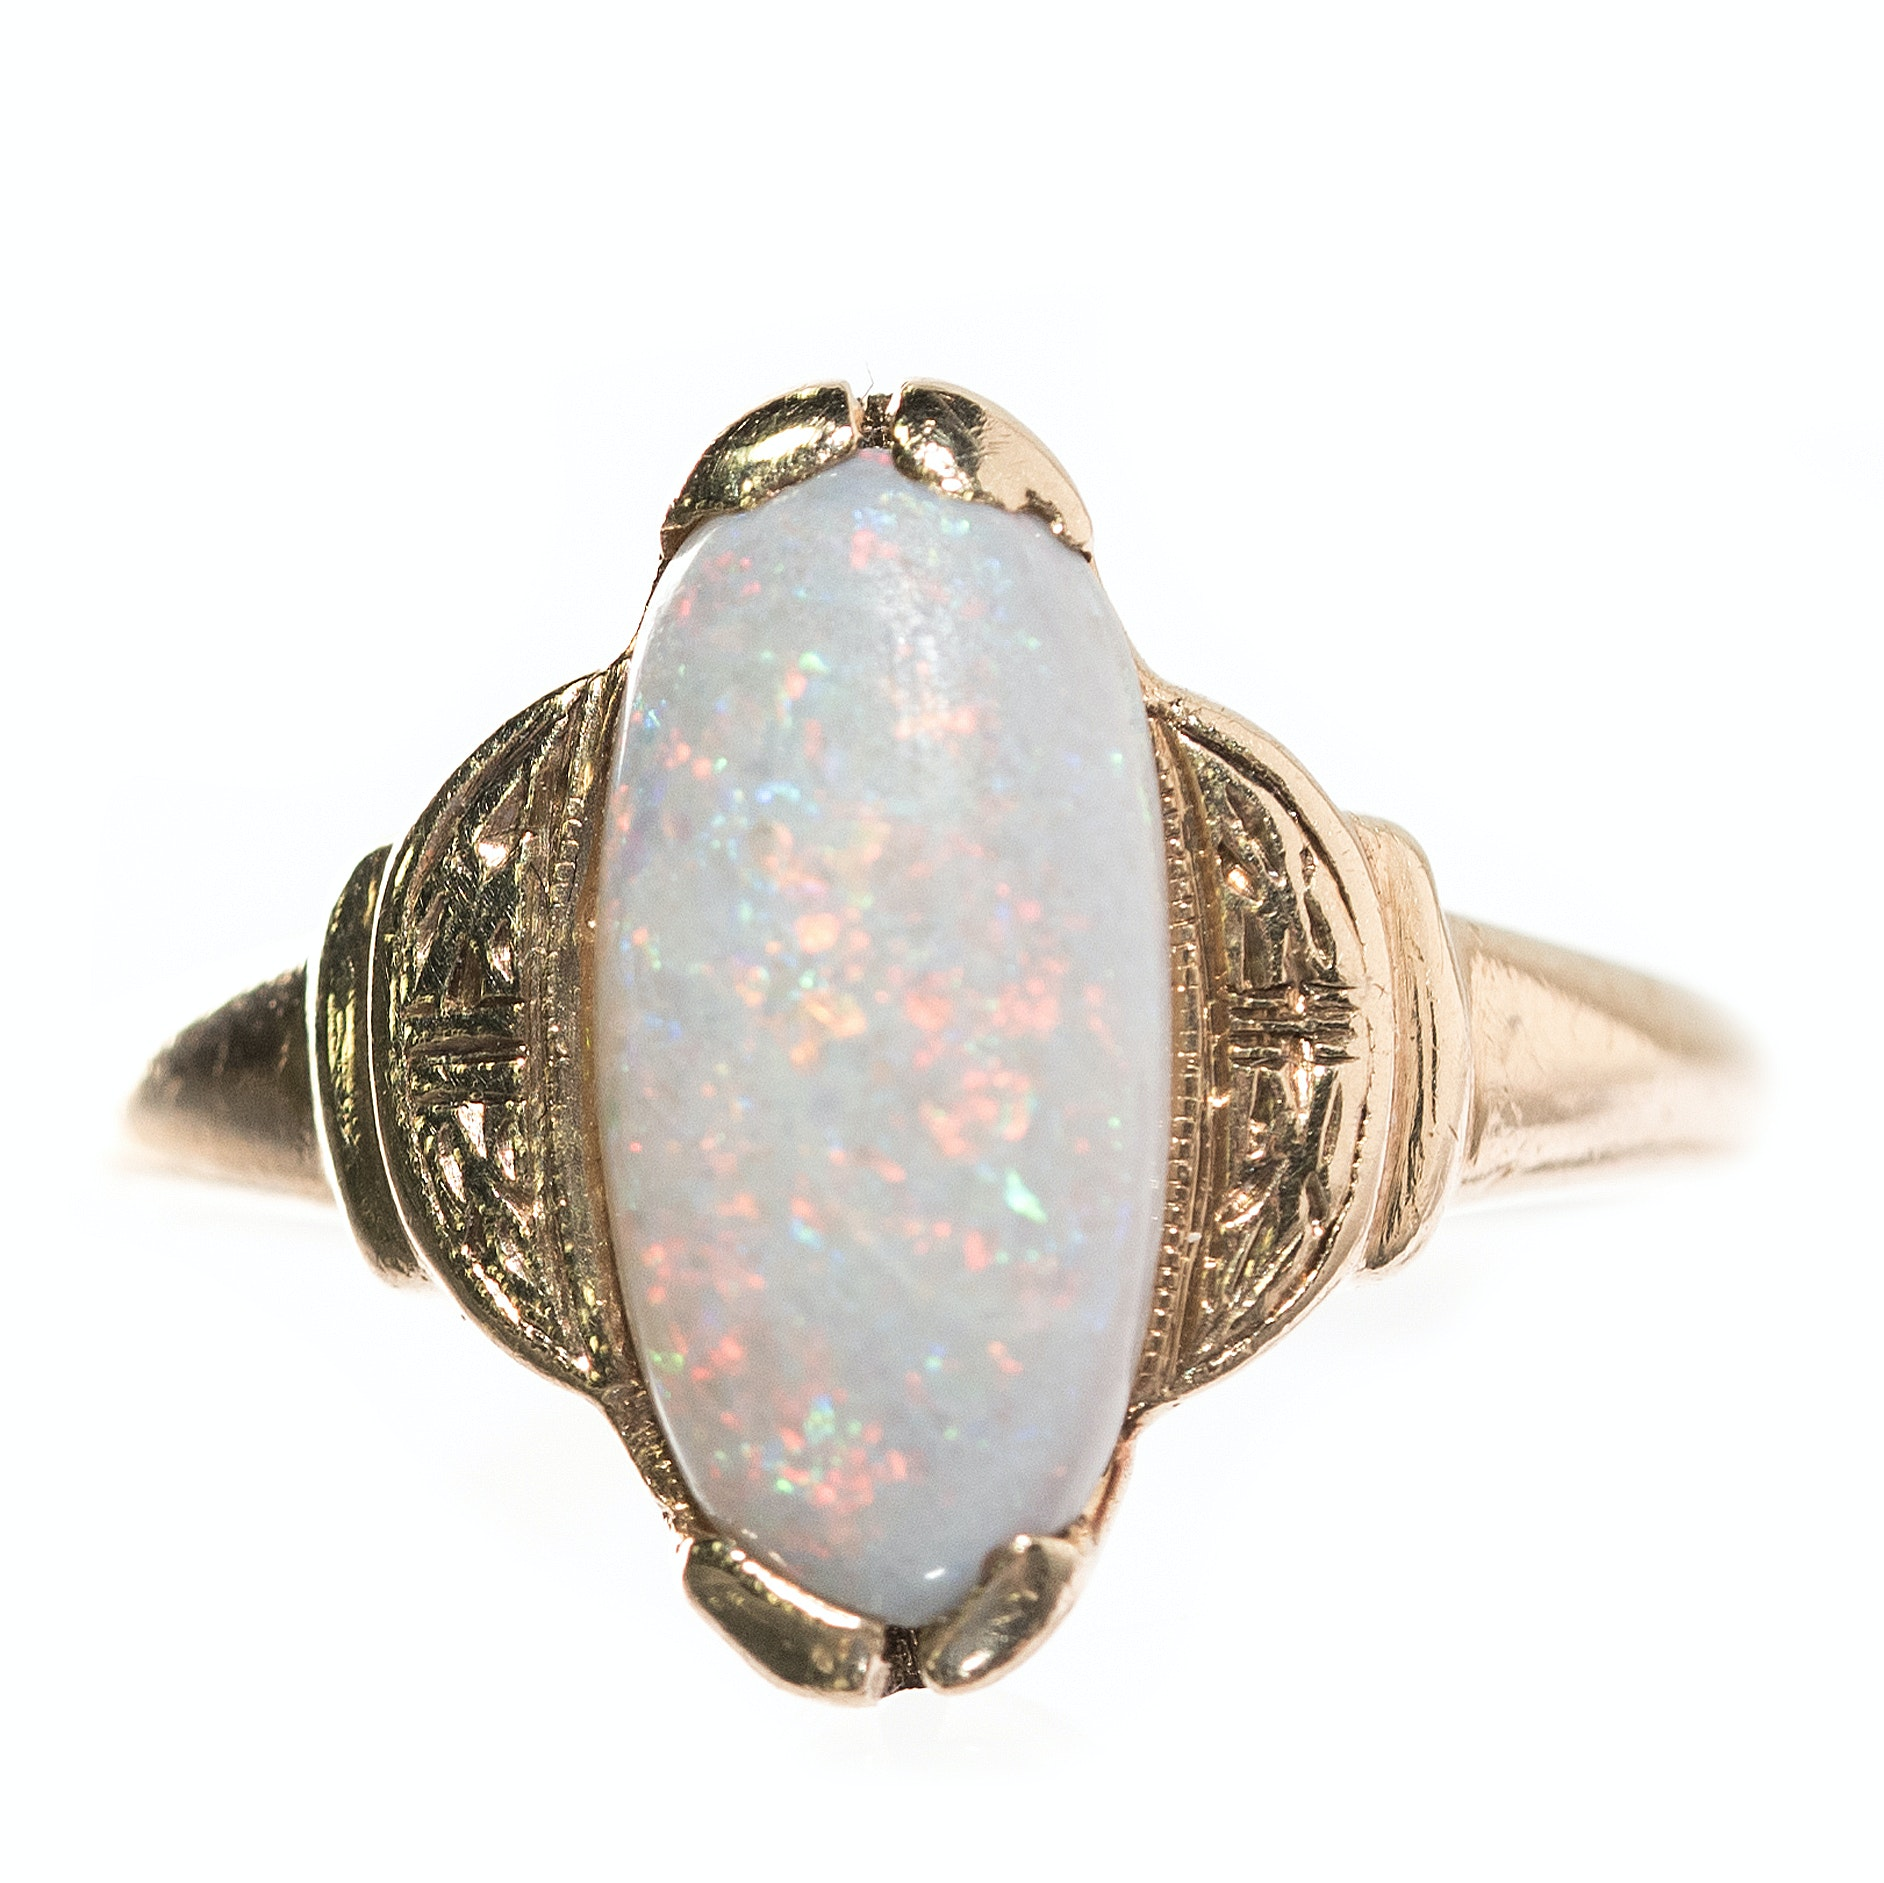 Vintage 14K Yellow Gold and 1.00 CT Opal Ring